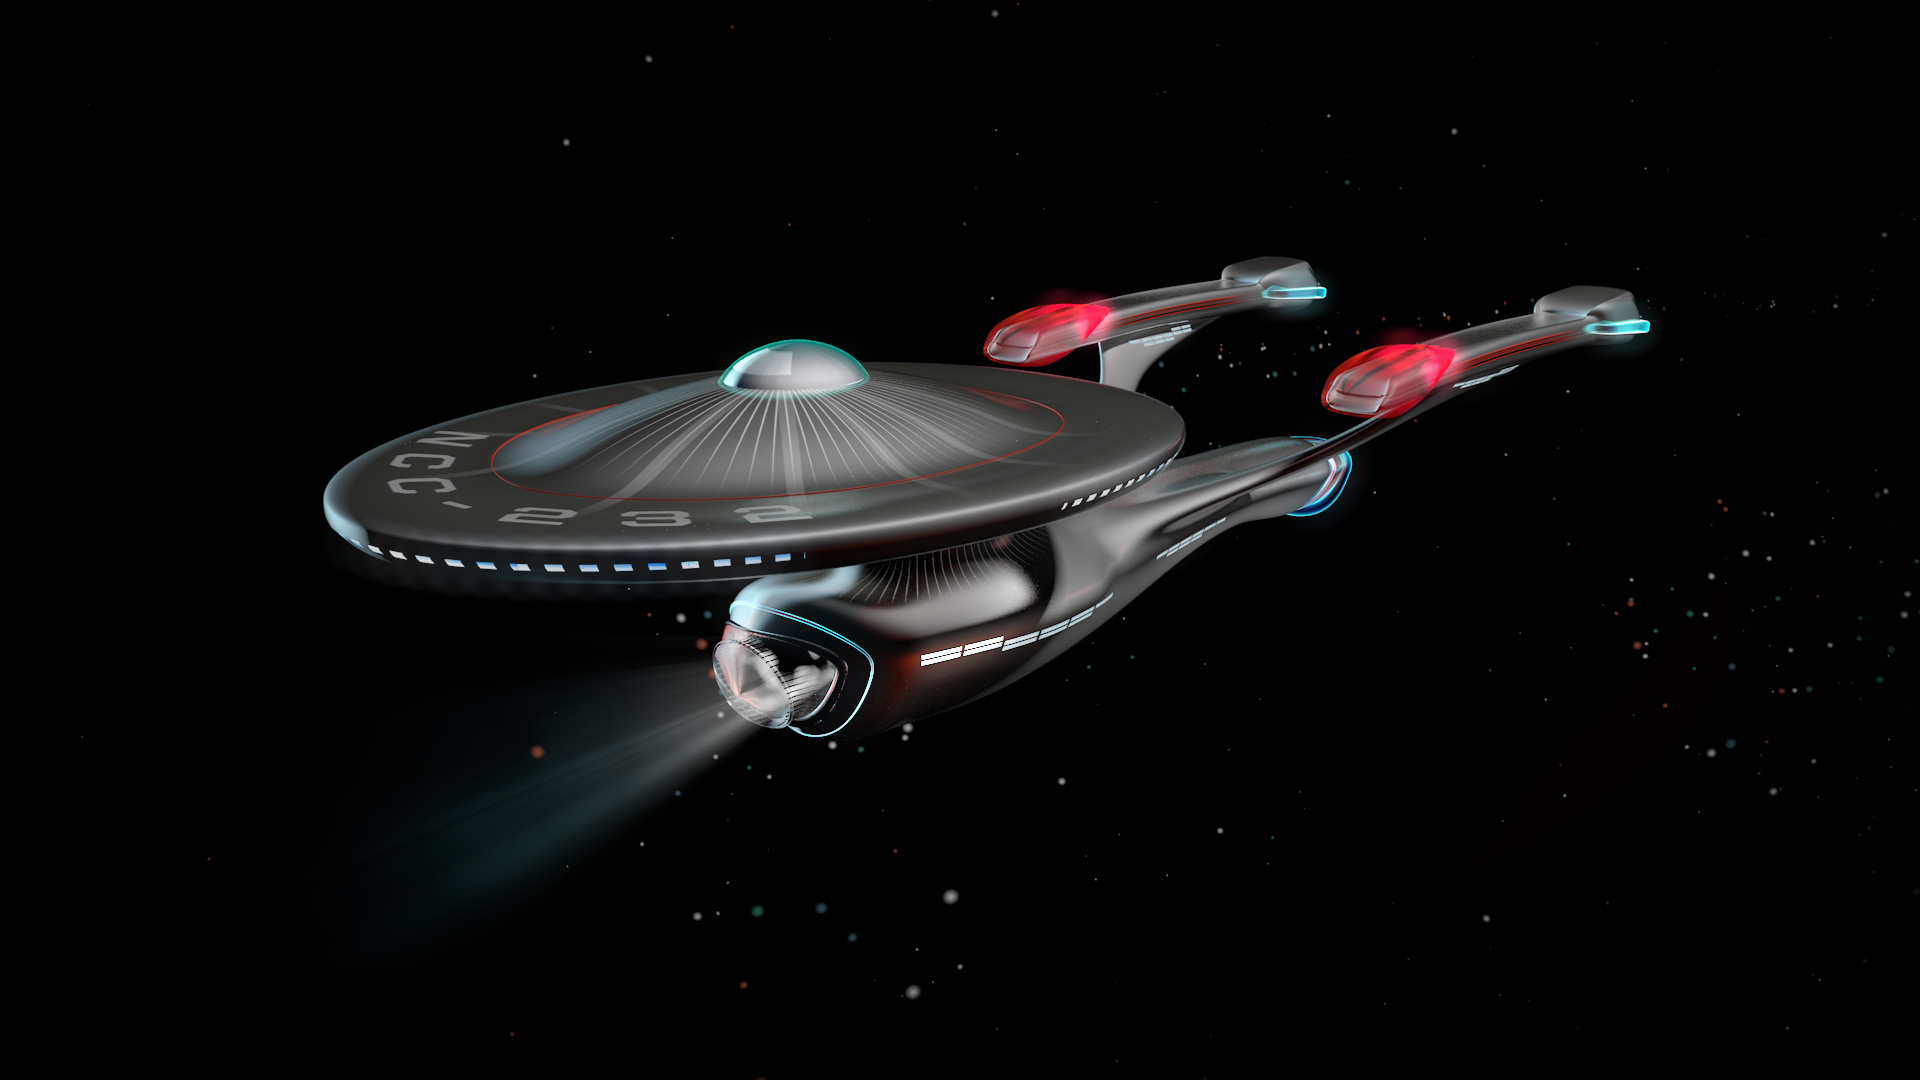 I always wanted to build a version of the Enterprise. This is was modeled in Cinema 4D.